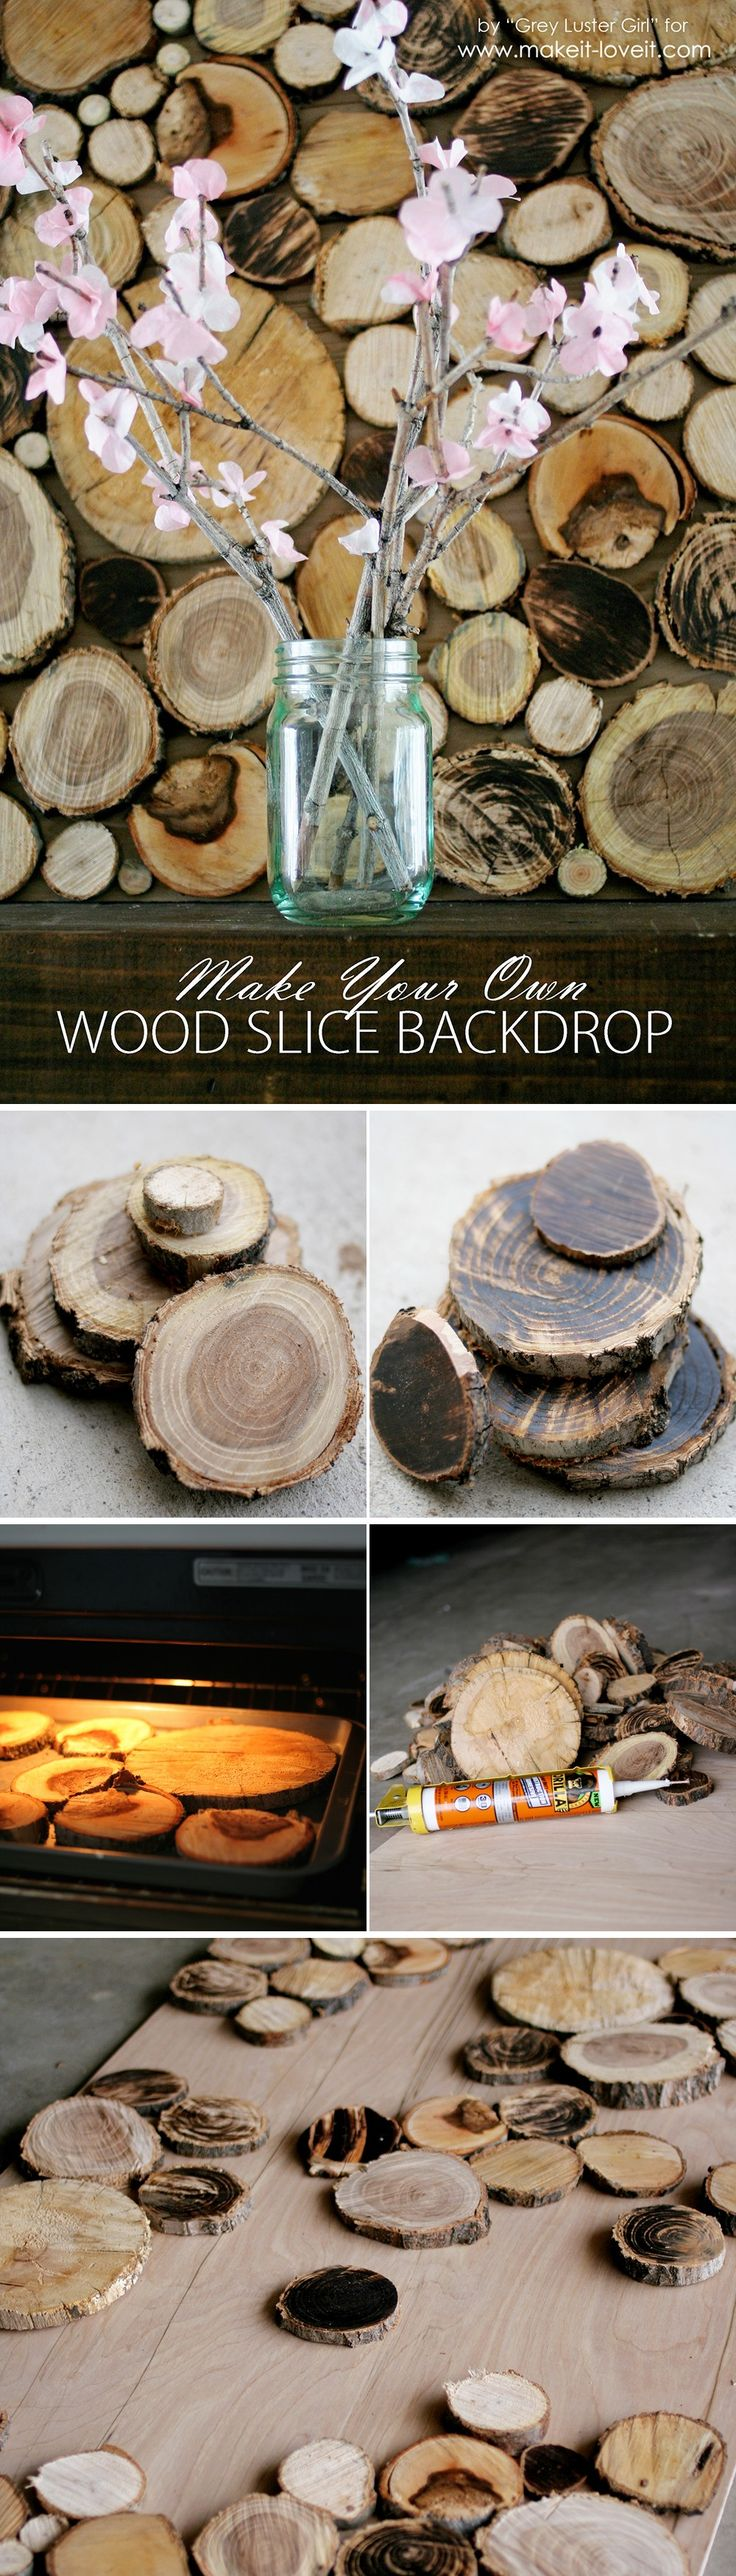 creative ways to diy with wood slices